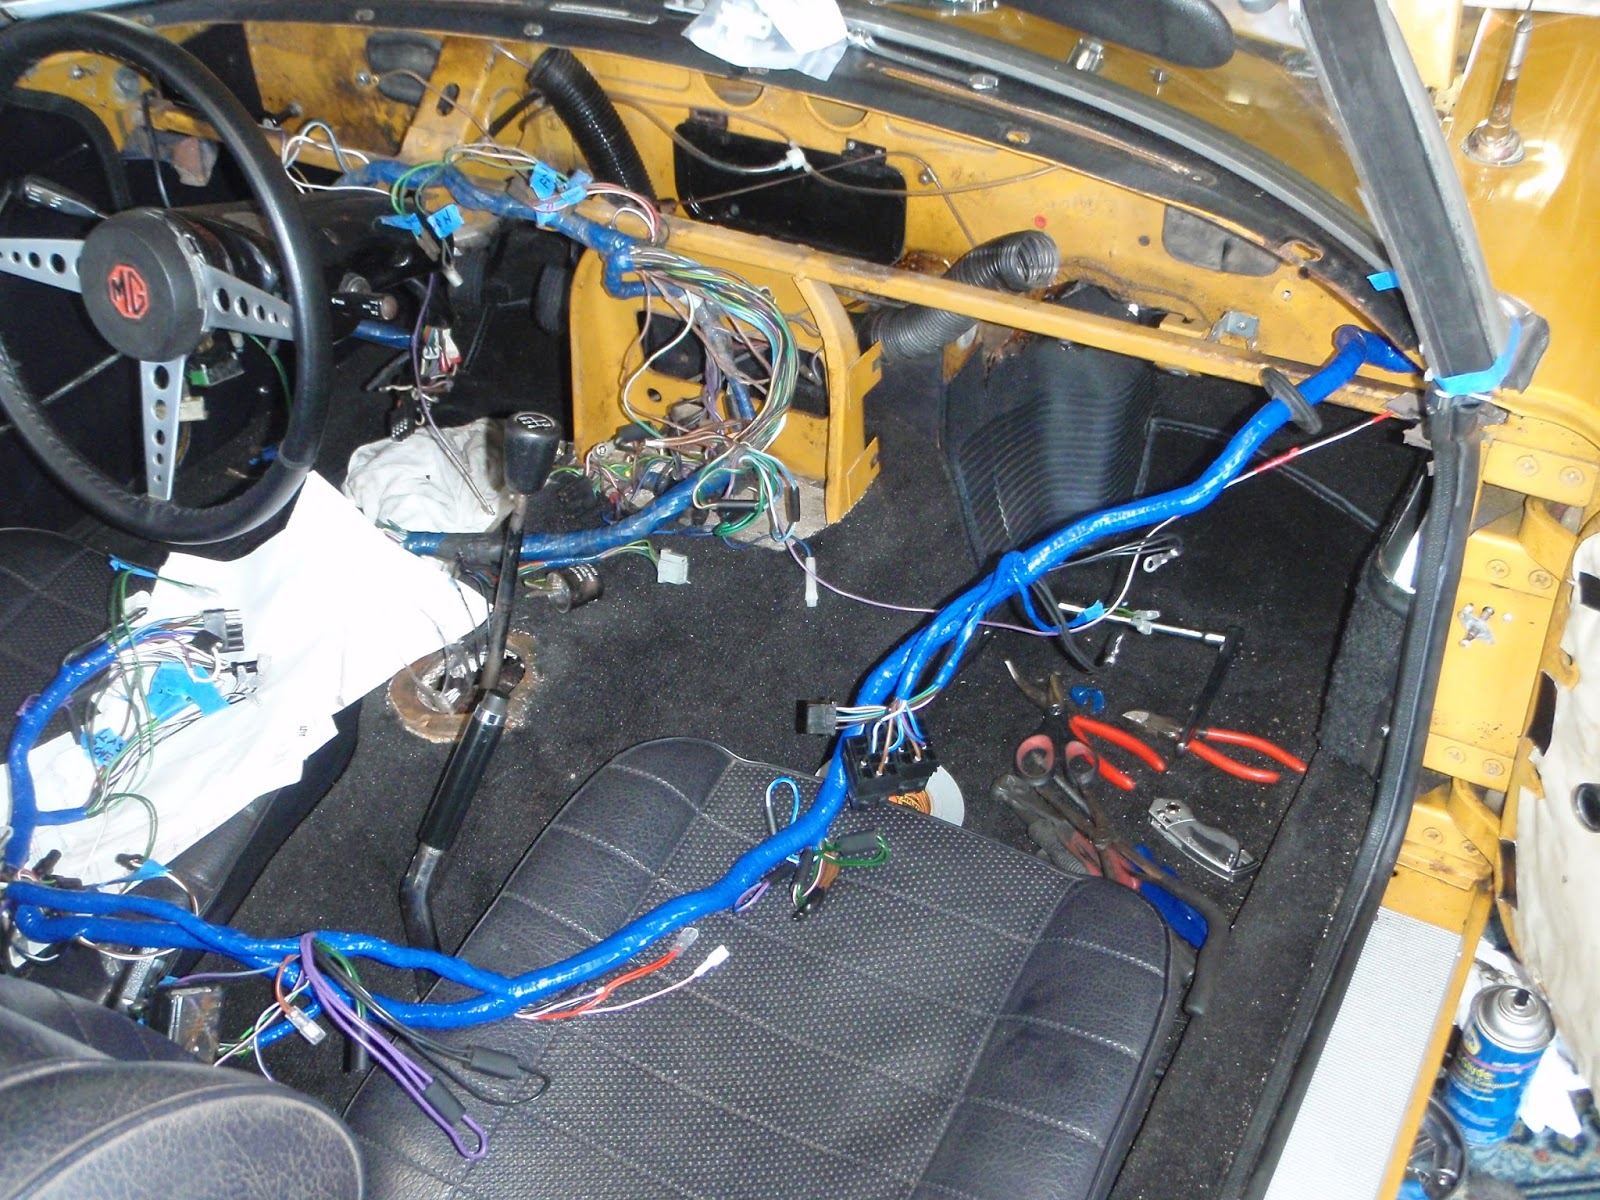 medium resolution of mgb in the garage new wiring harness vinyl top alternator etc 1978 mgb dashboard wiring